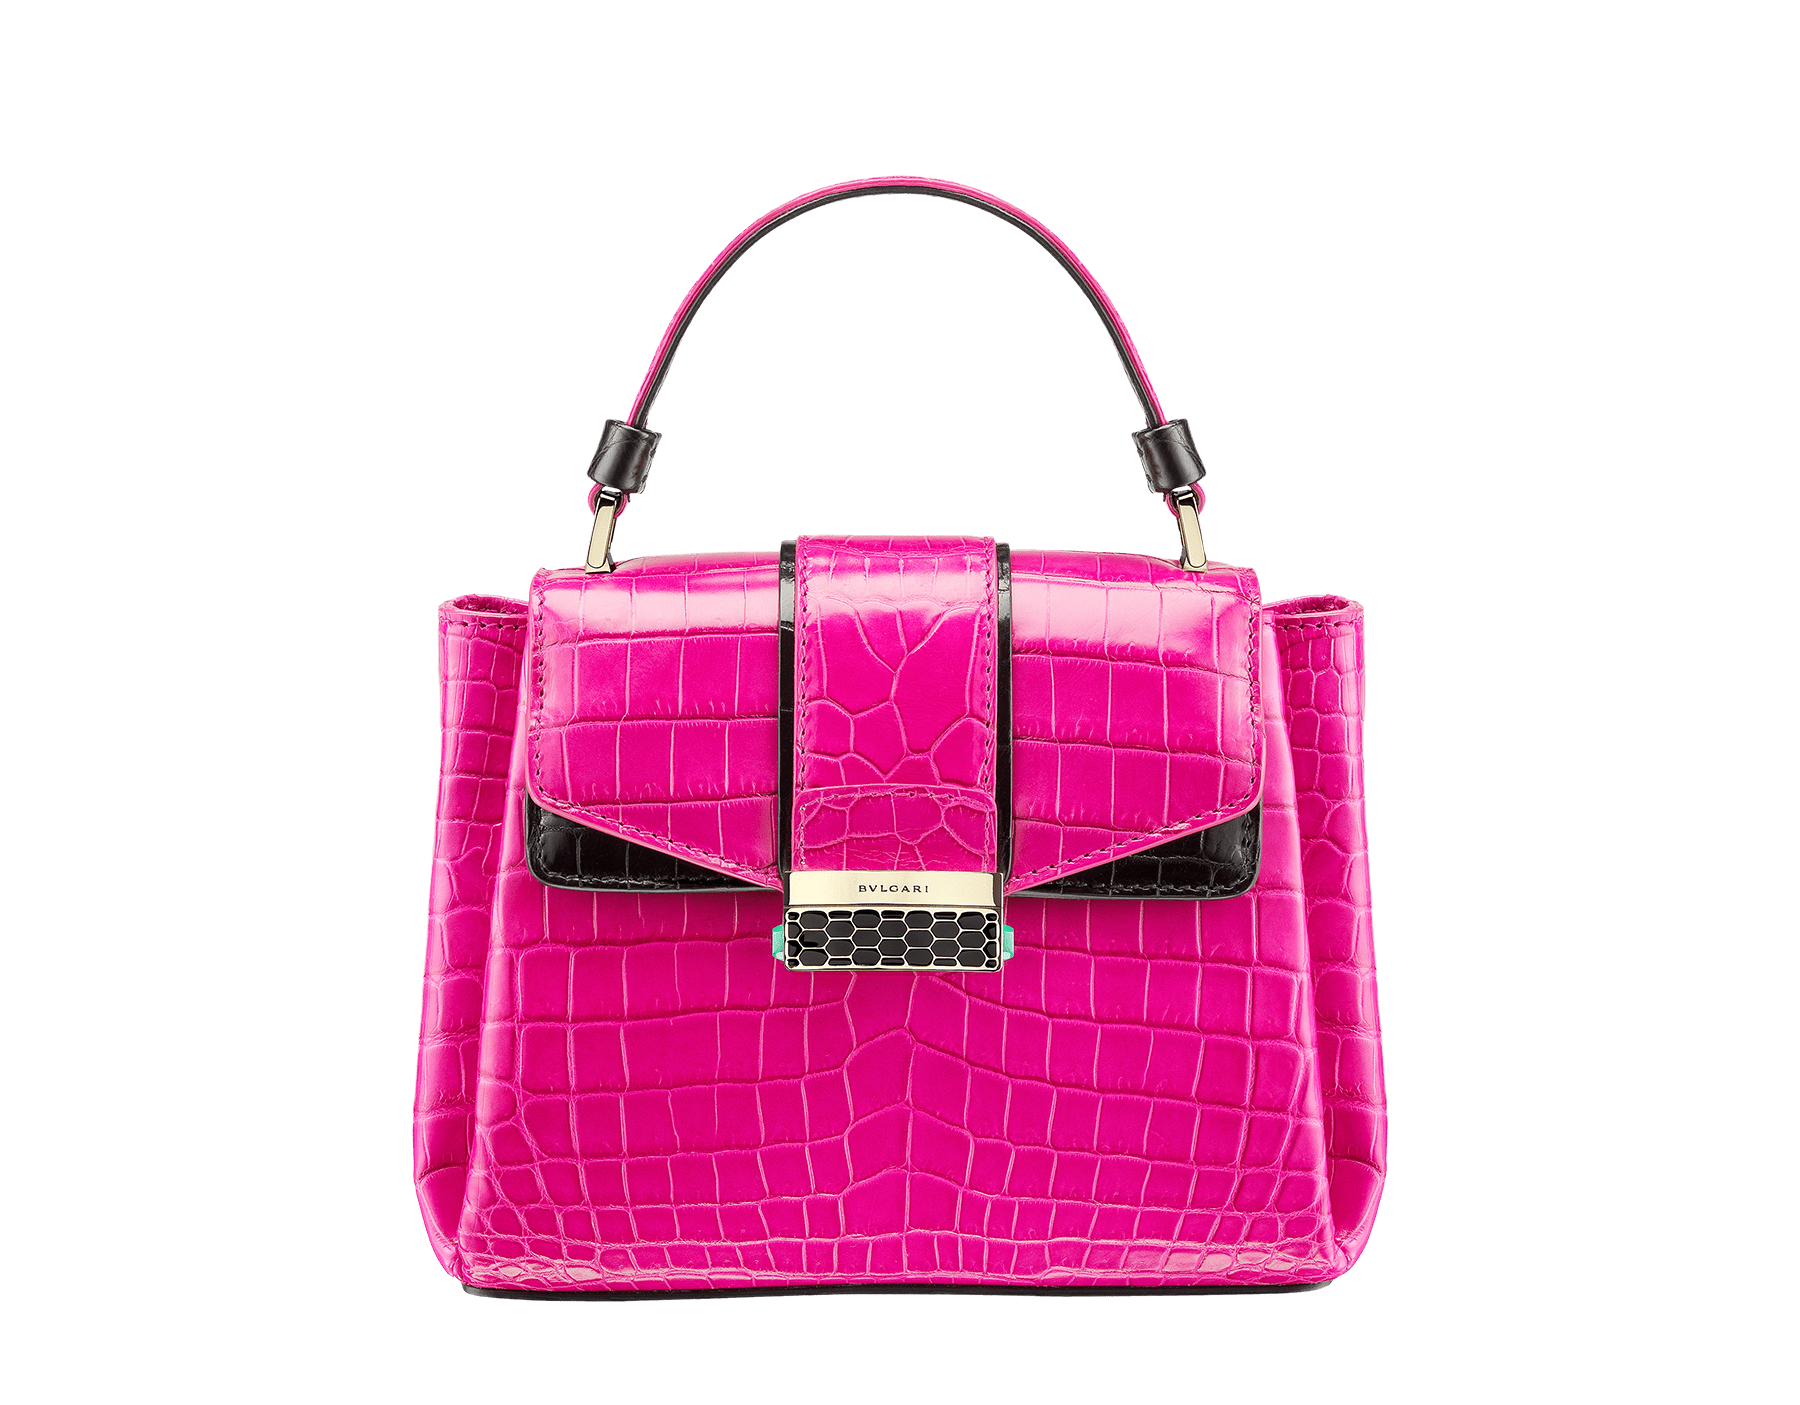 Top handle bag Serpenti Viper in pink spinel and black shiny crocodile skin. 282923 image 1